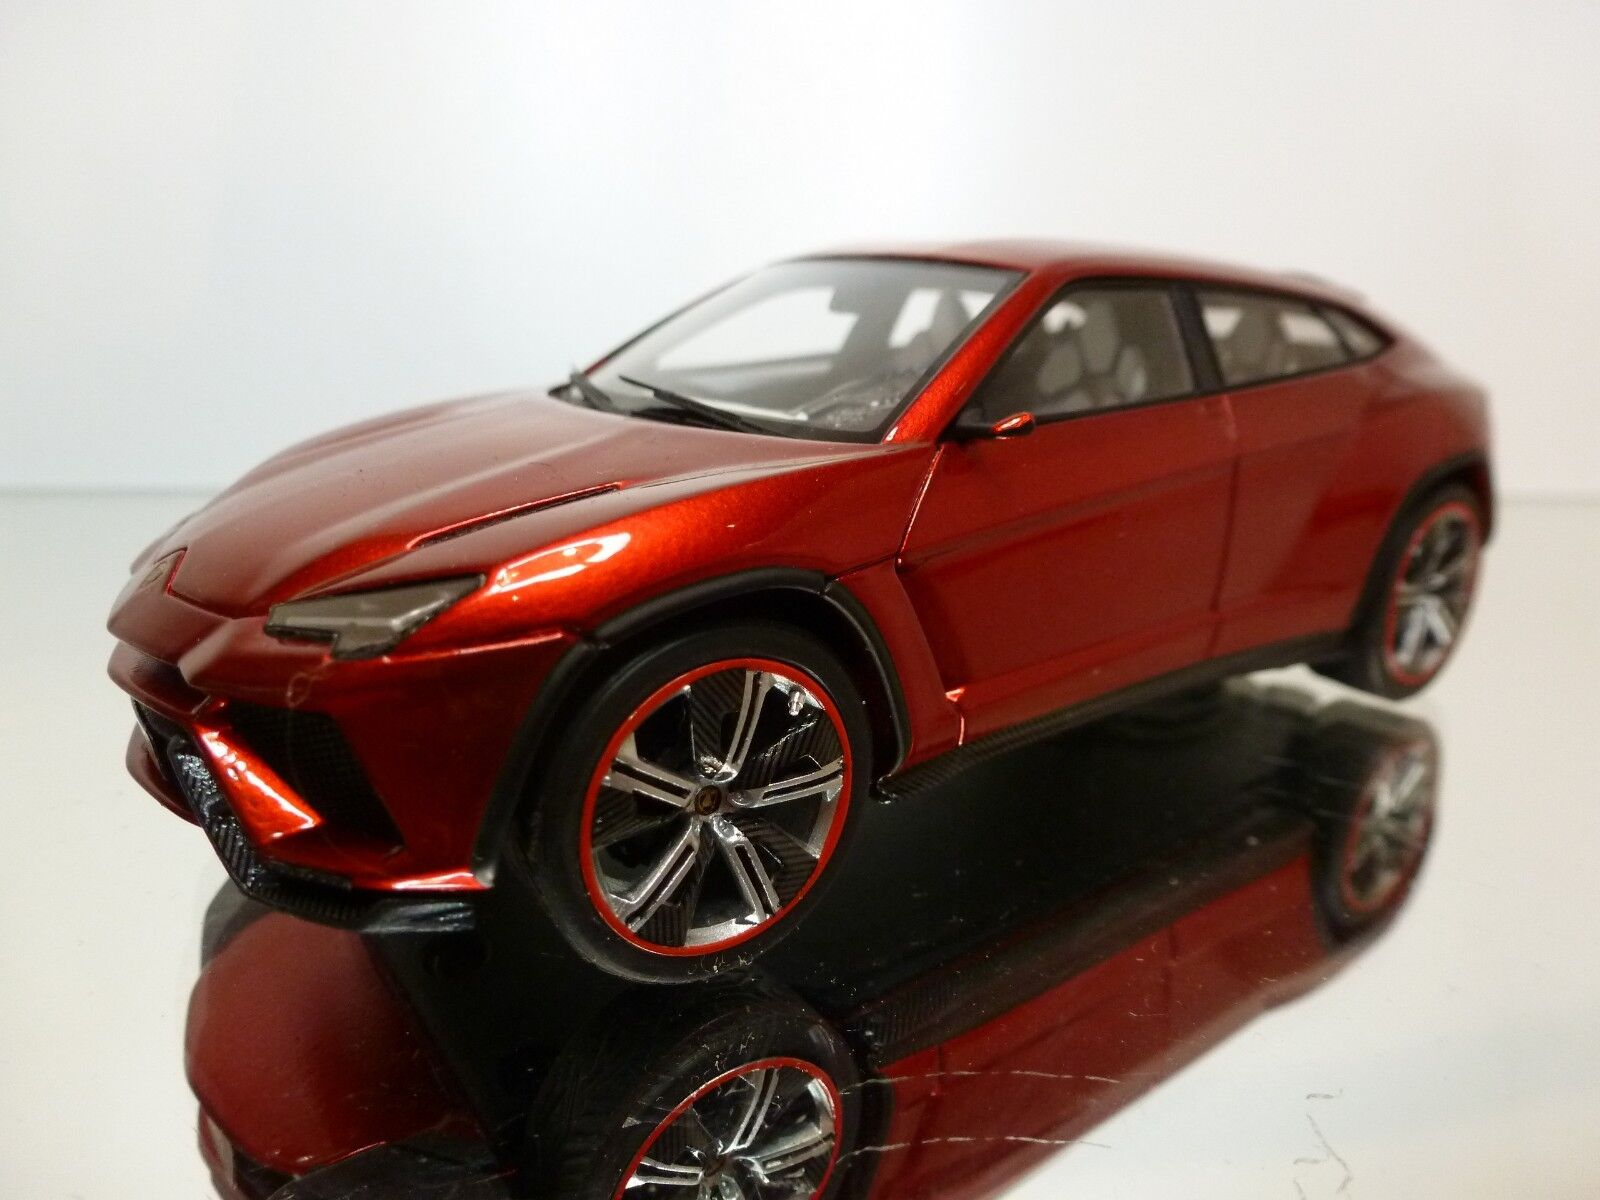 LOOKintelligent LS399A LAMBORGHINI URUS 2012 - rouge  METALLIC 1 43 - EXCELLENT - R29  beaucoup de surprises